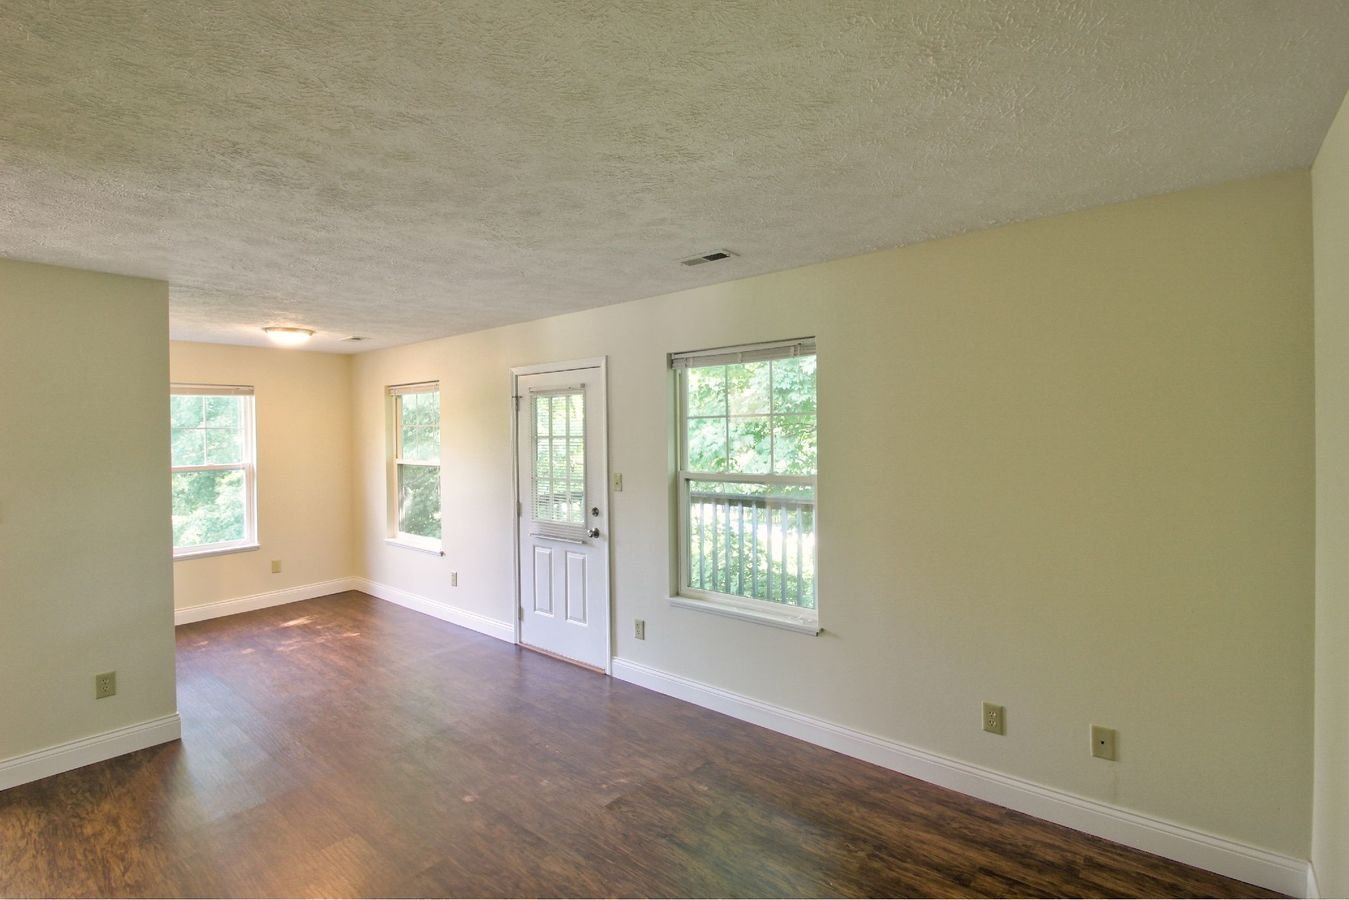 1 Bedroom 1 Bathroom Apartment for rent at Huntington Gardens in Bloomington, IN